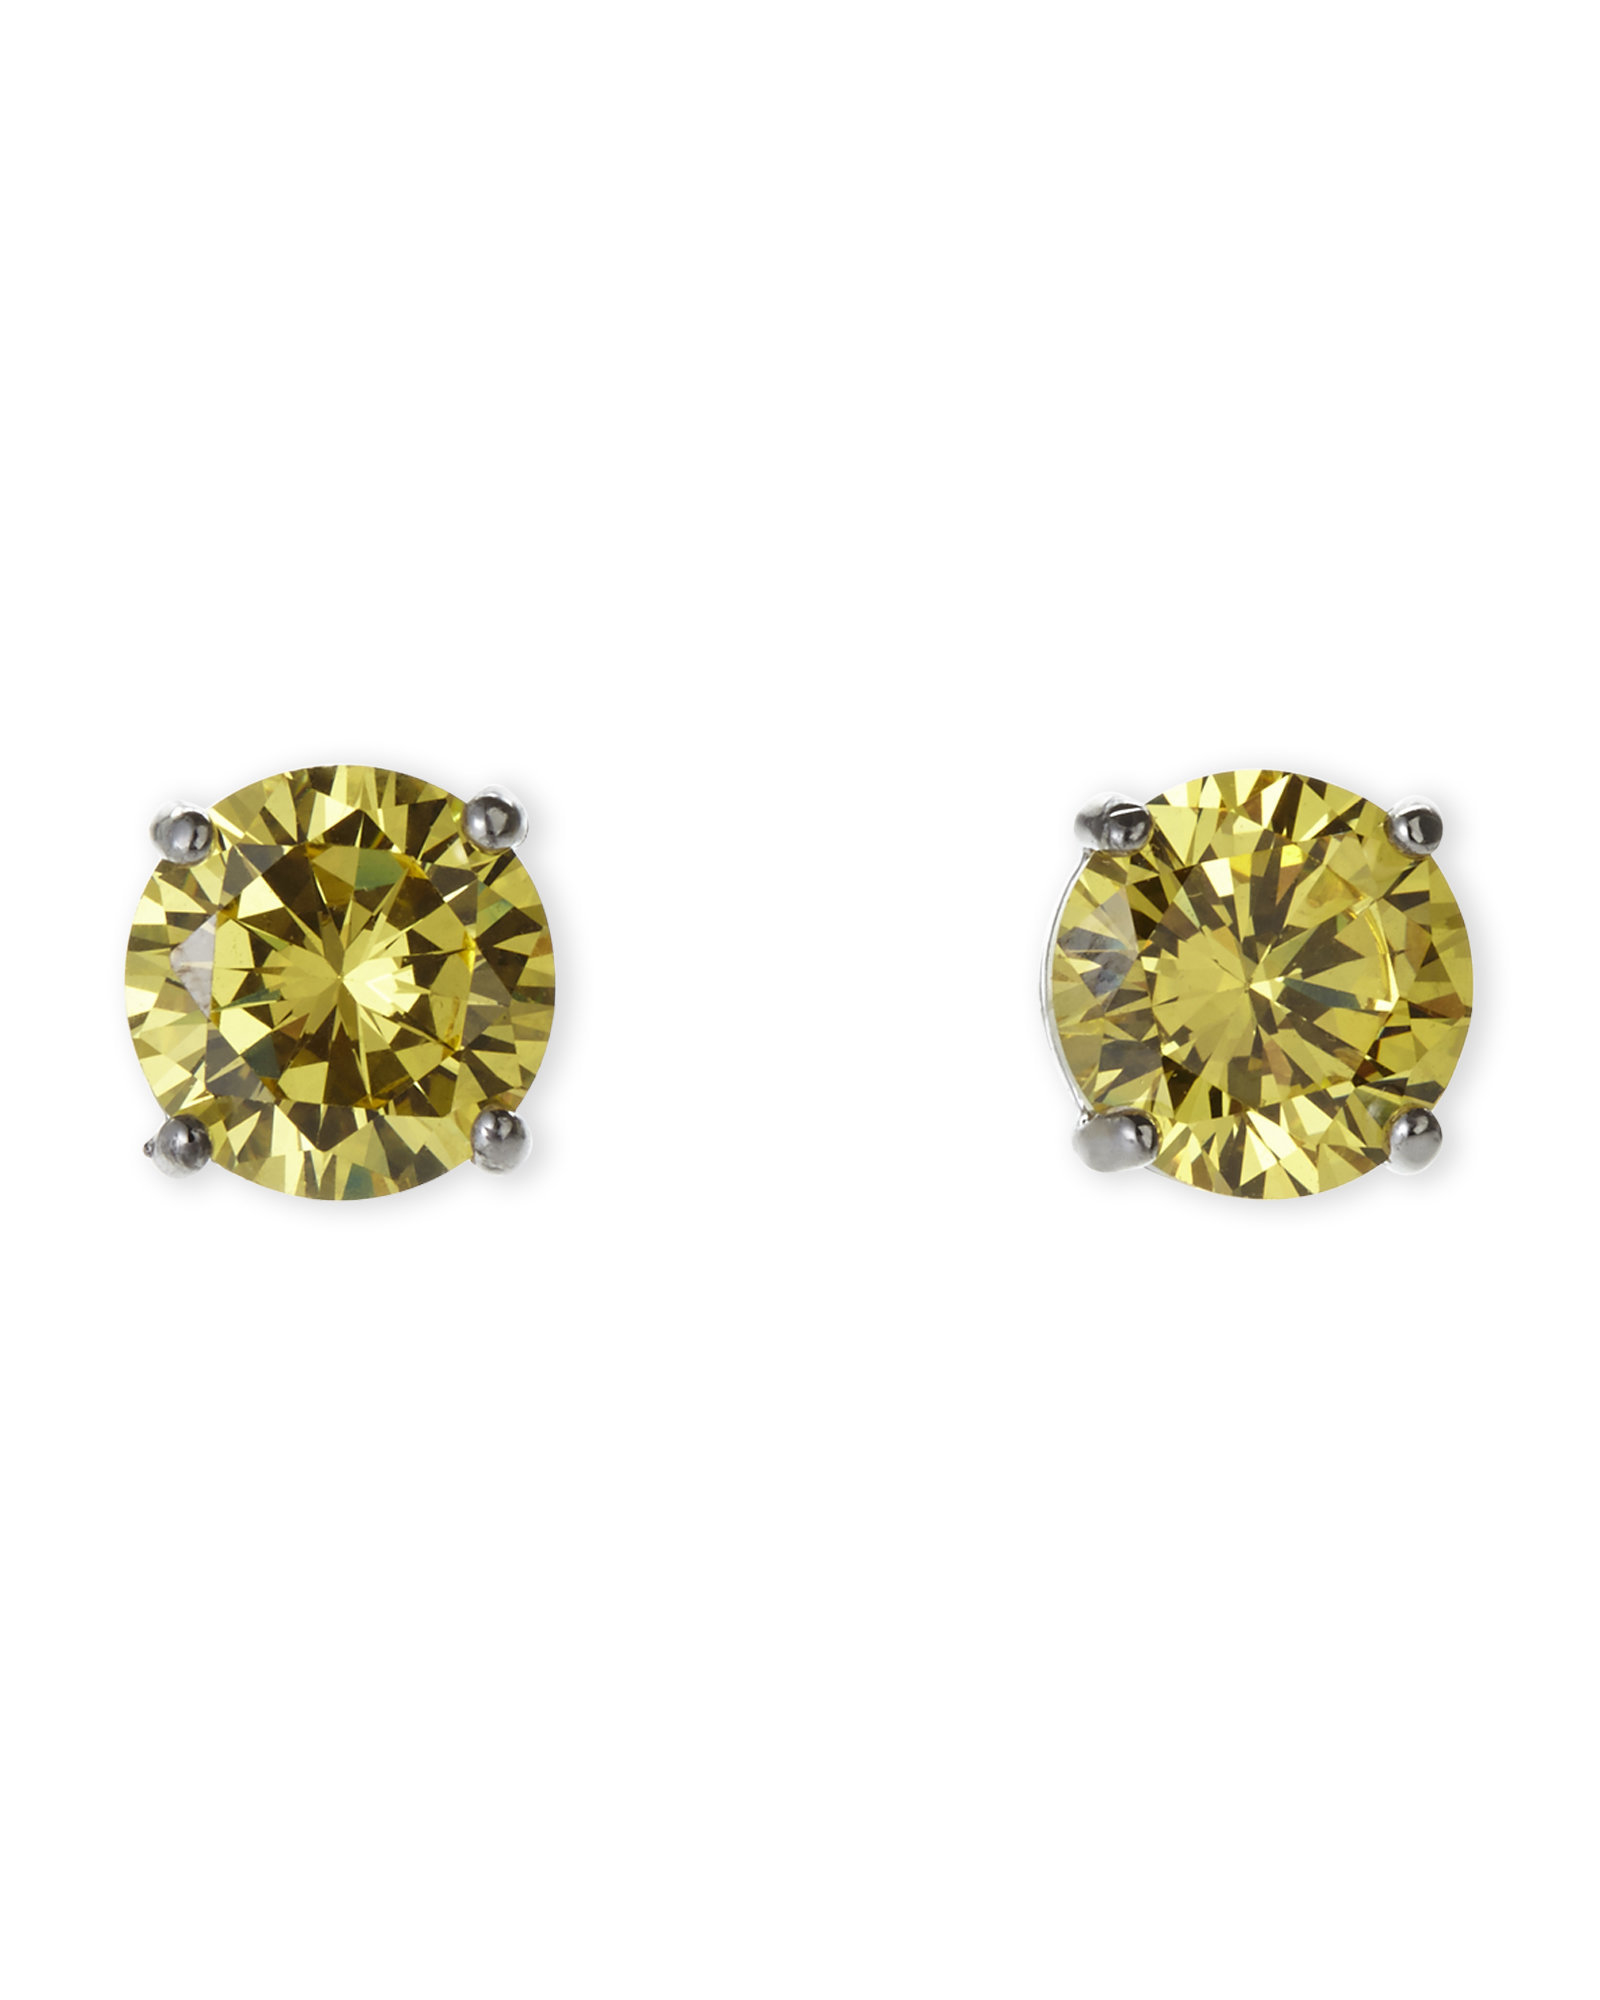 Jardin silver tone yellow cubic zirconia stud earrings for Jardin jewelry